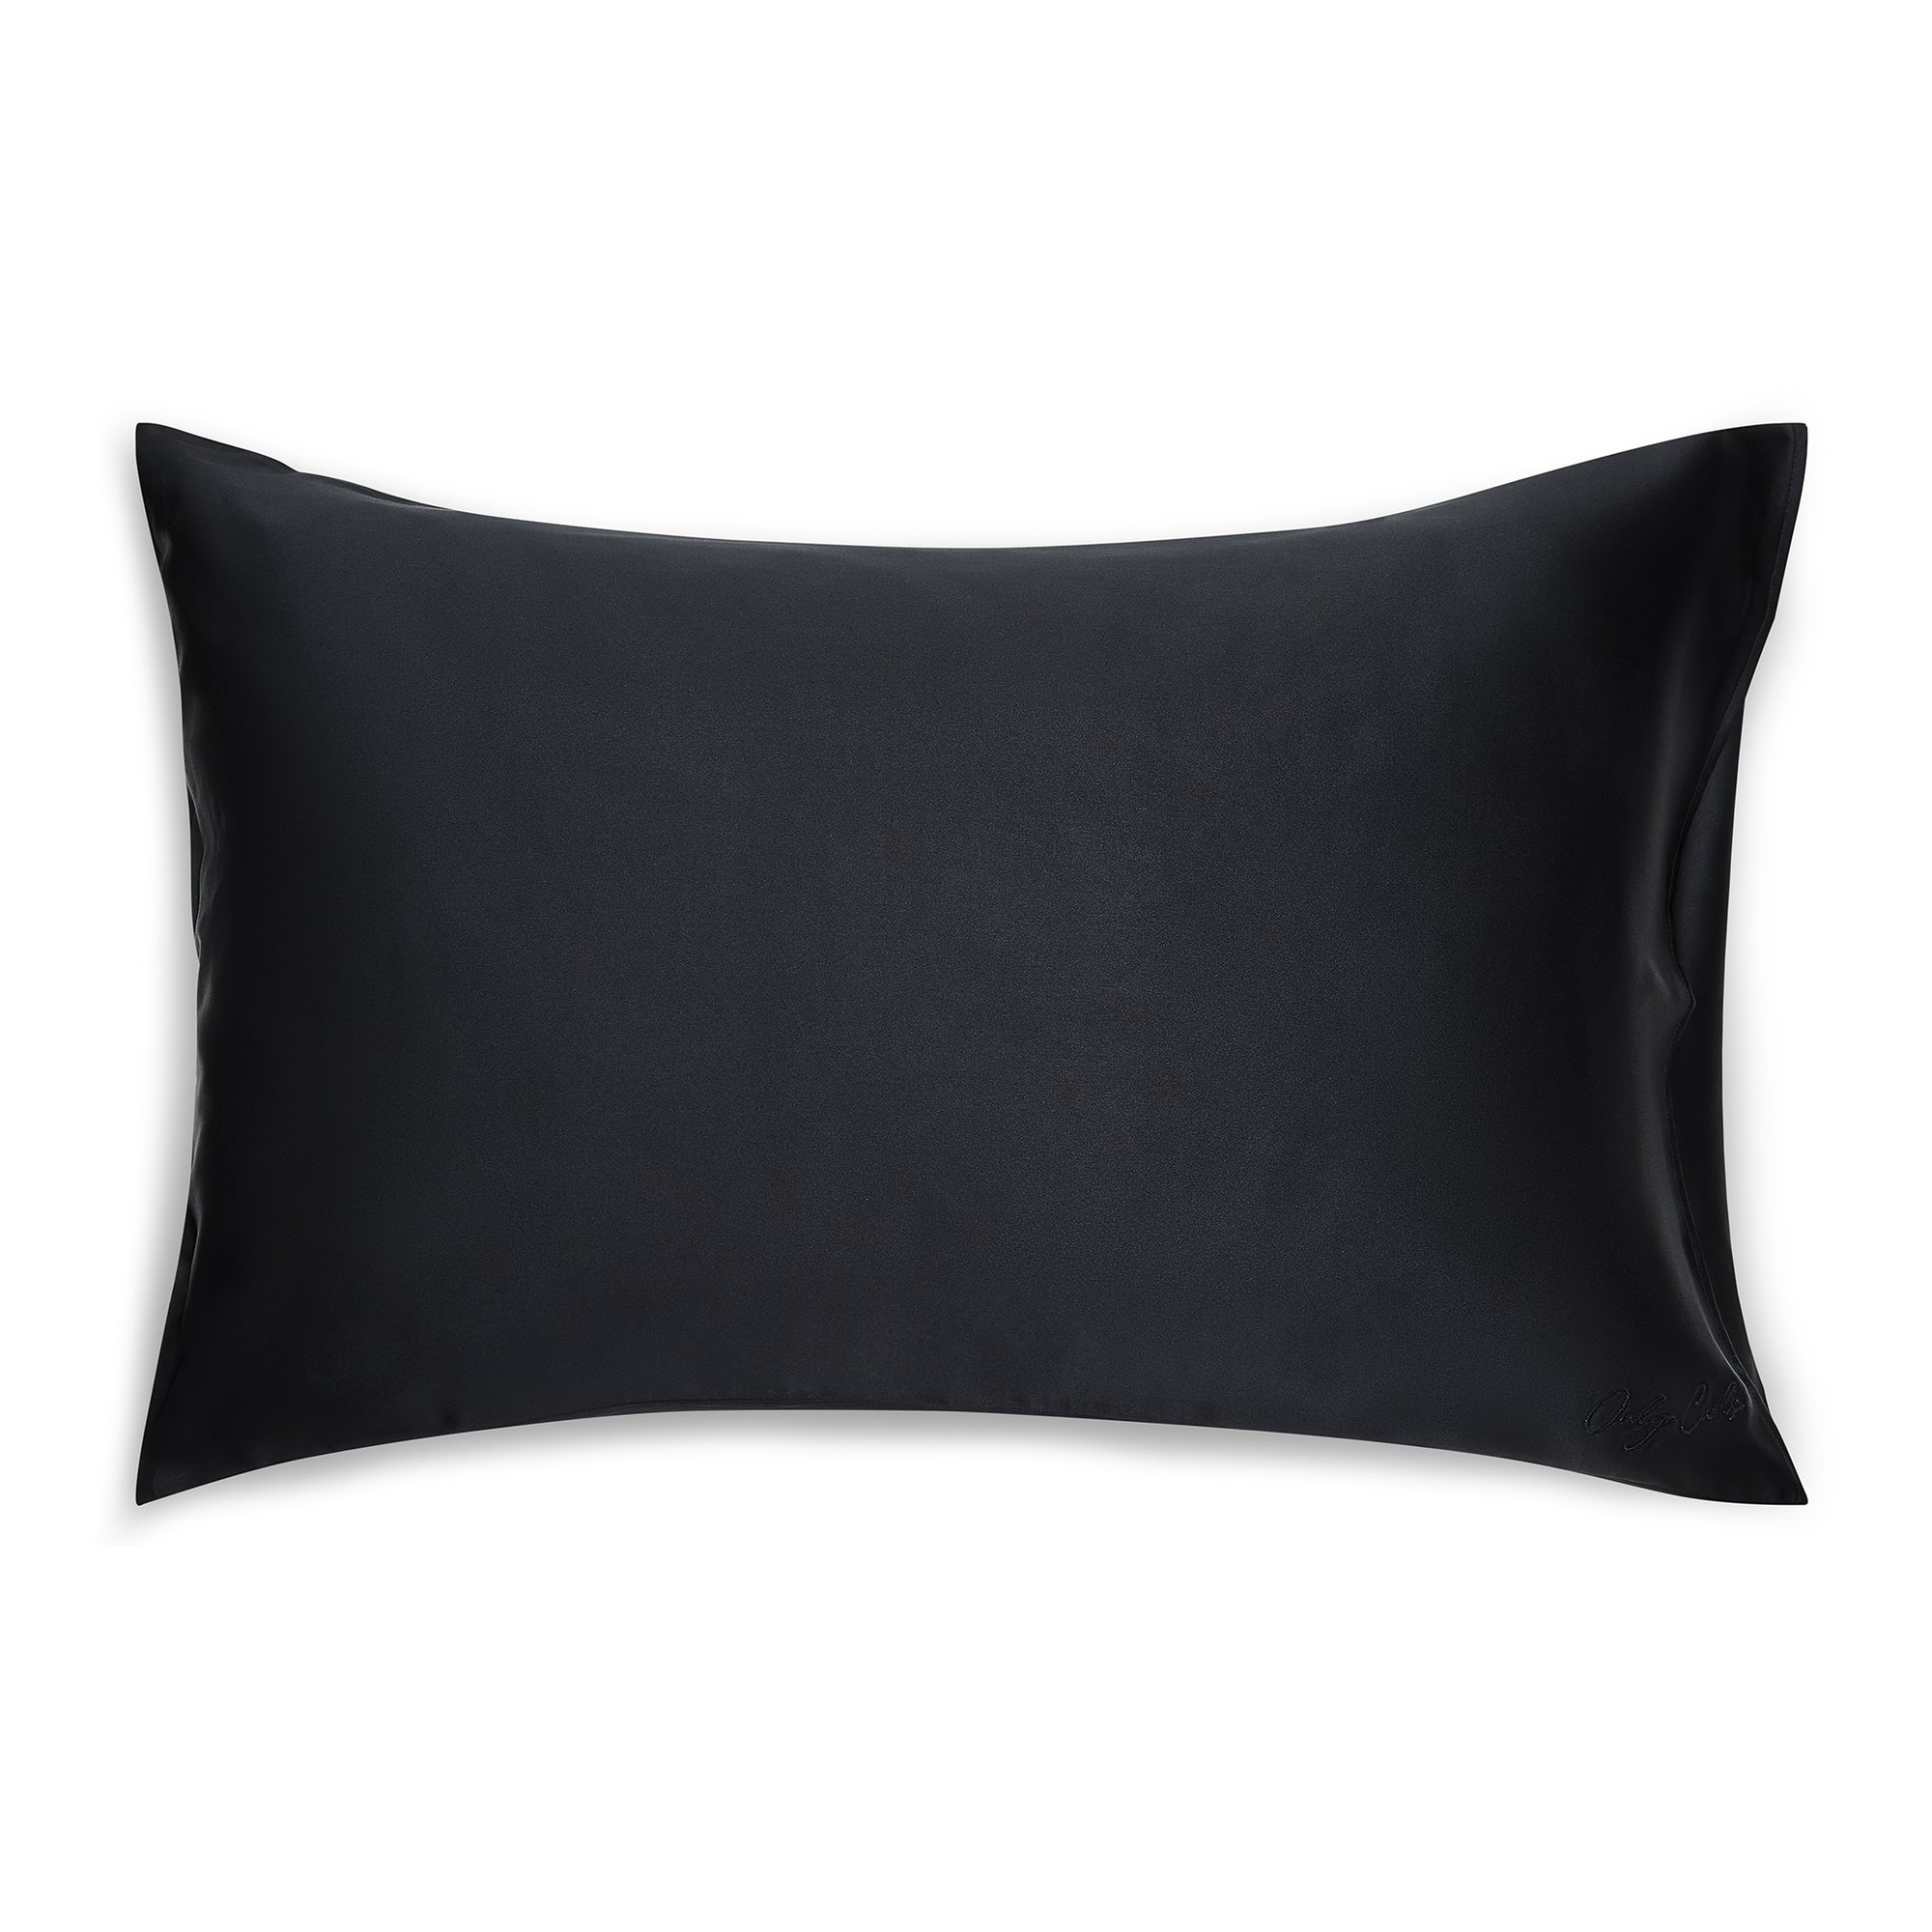 Only Curls Silk Pillowcase - Black - Only Curls